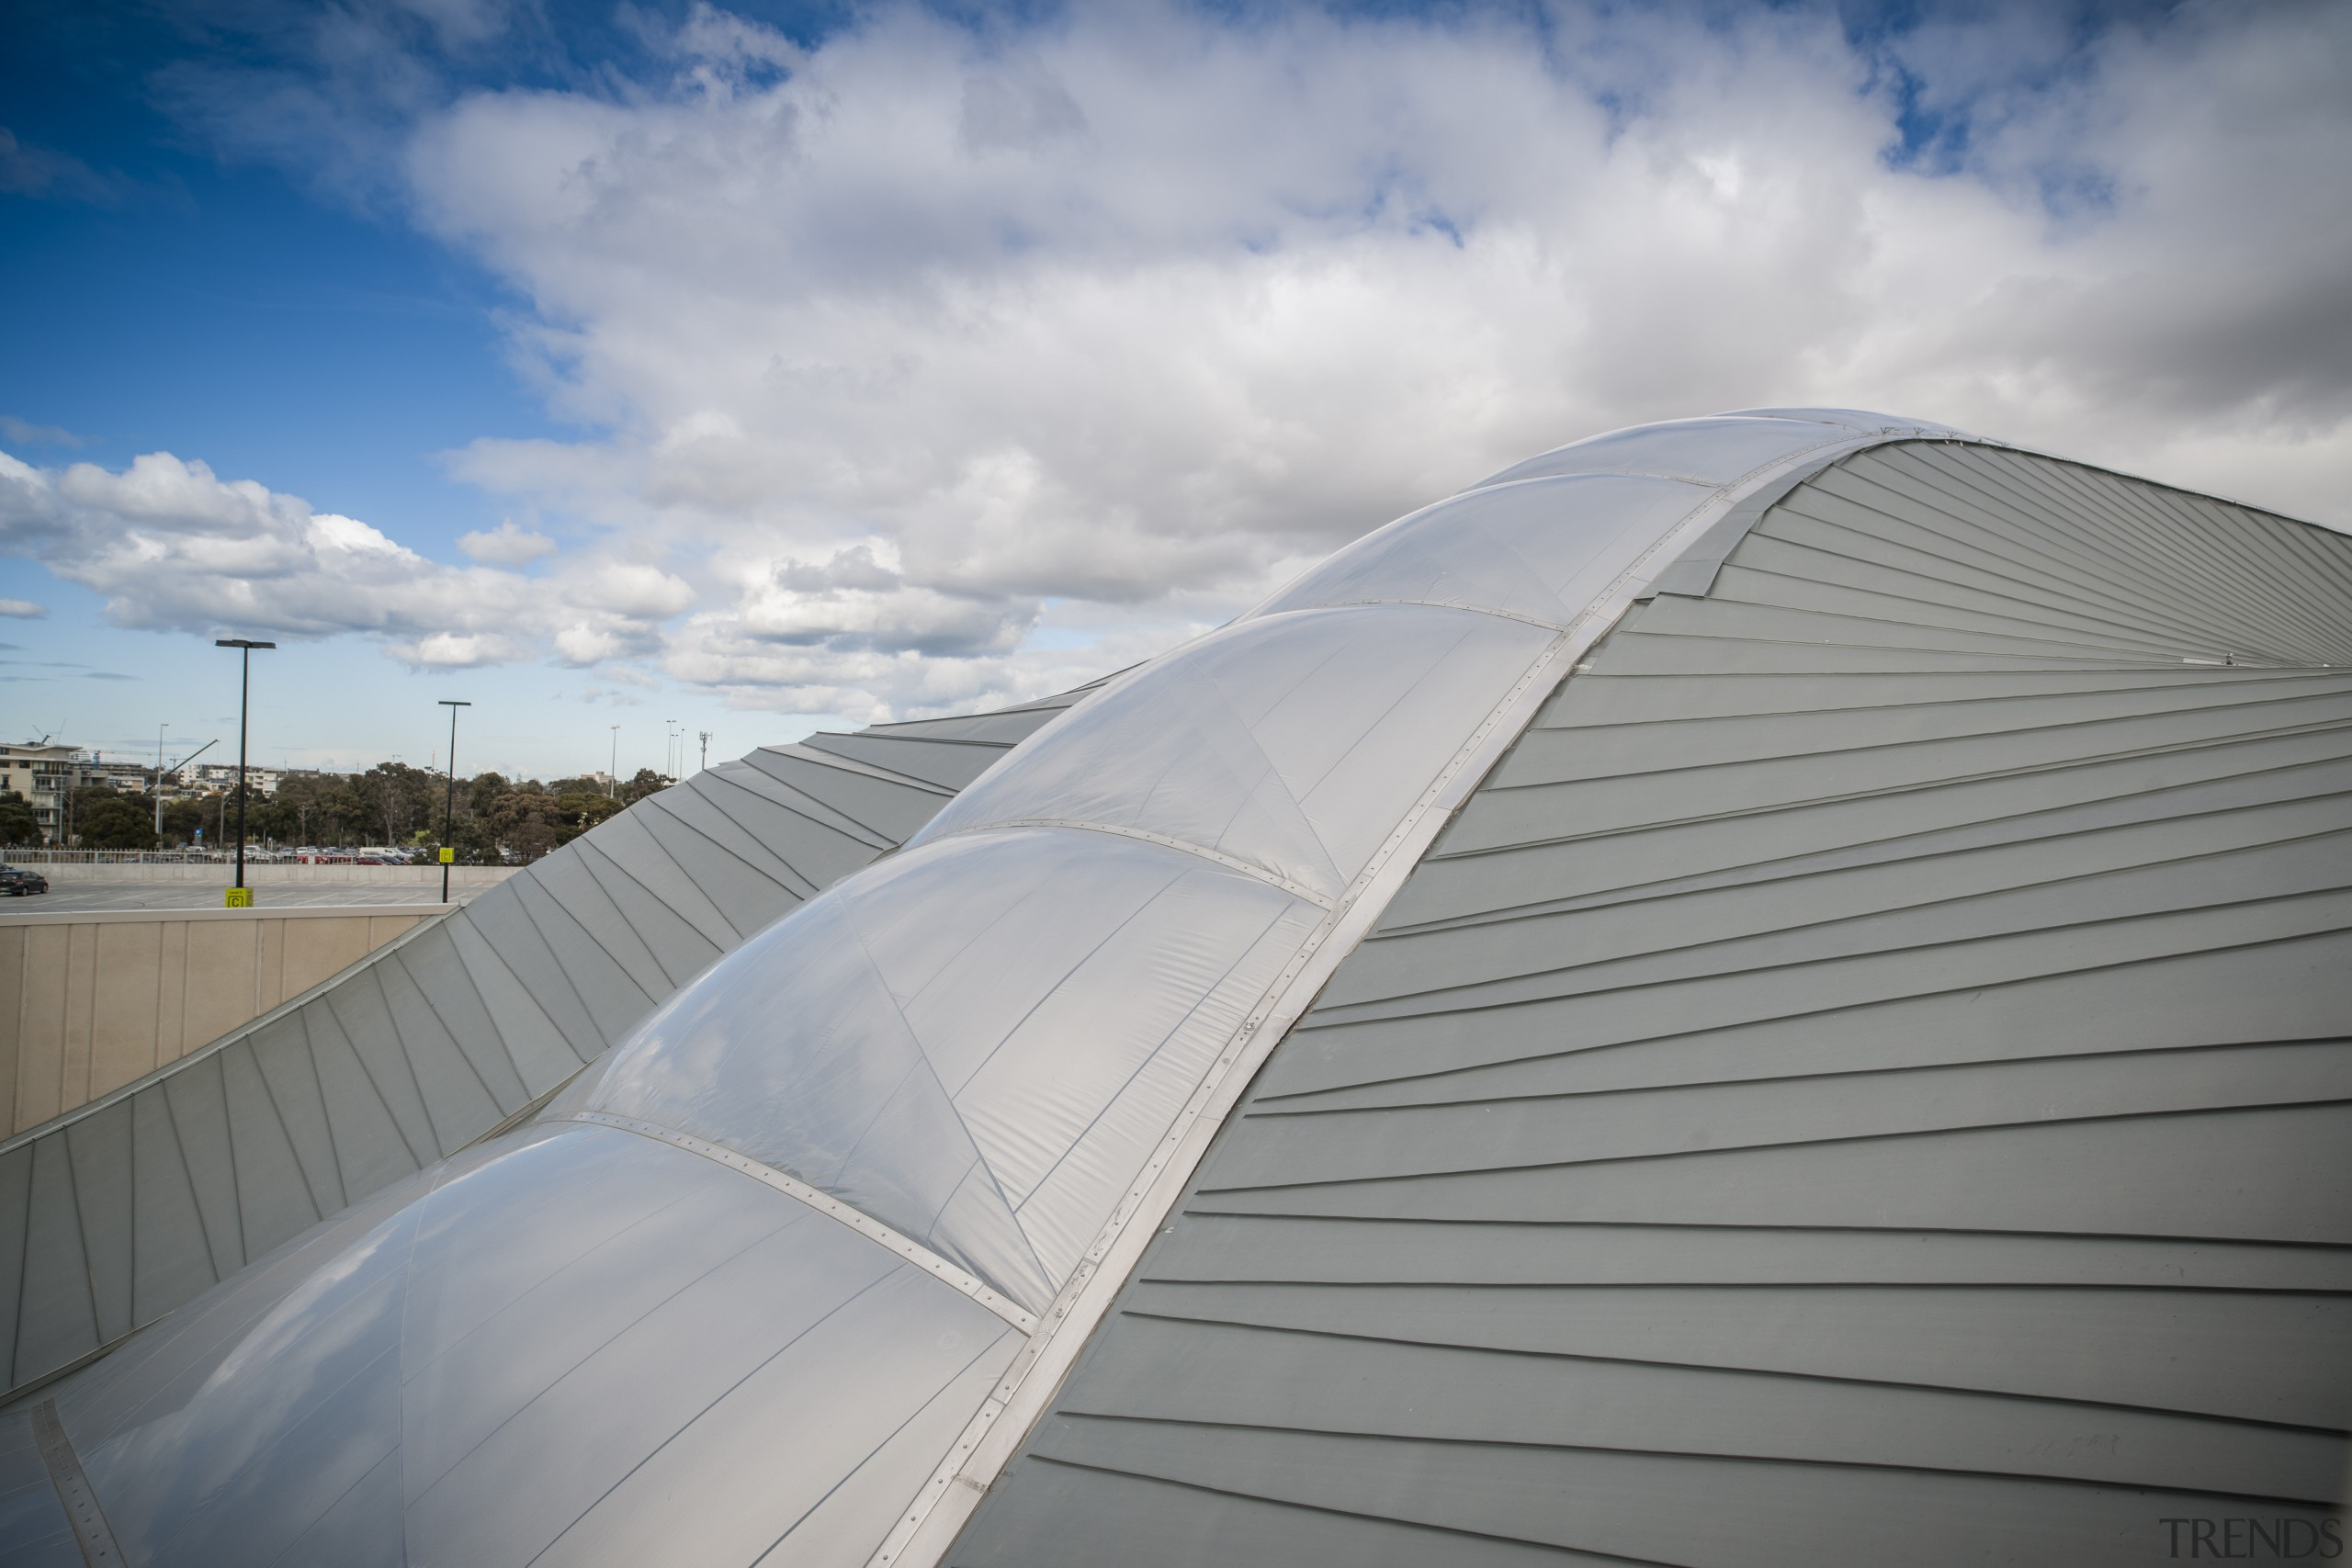 The roof was chosen in part for its architecture, atmosphere of earth, cloud, daylighting, daytime, line, roof, sky, structure, sunlight, gray